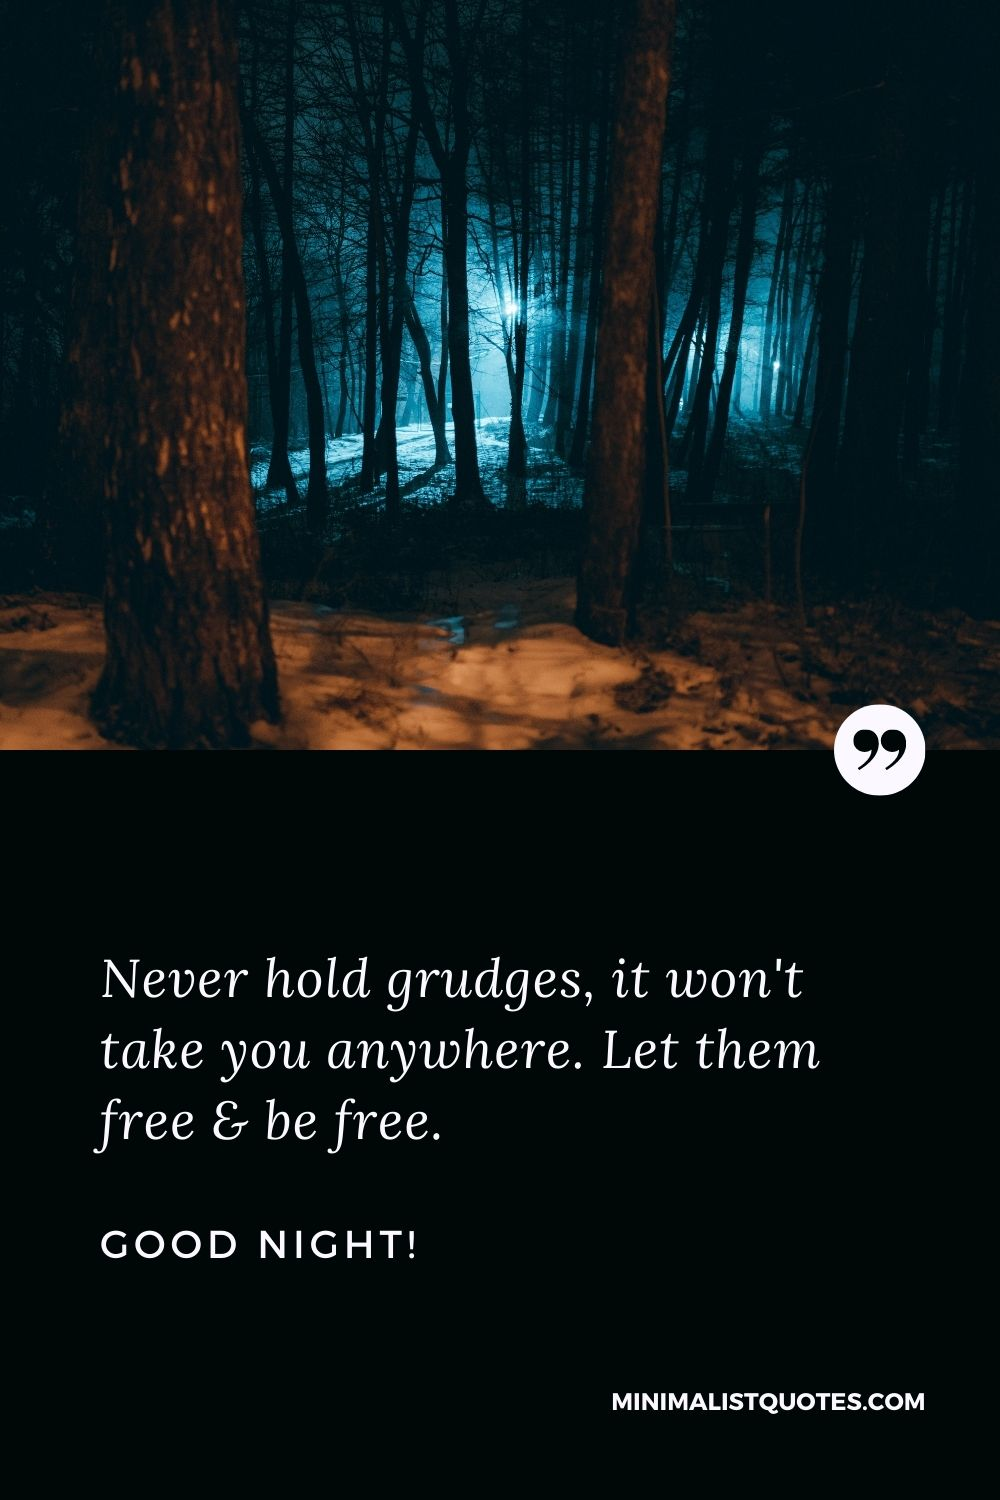 Good Night Wish & Message With HD Image: Never hold grudges, it won't take you anywhere. Let them free & be free. Good Night!